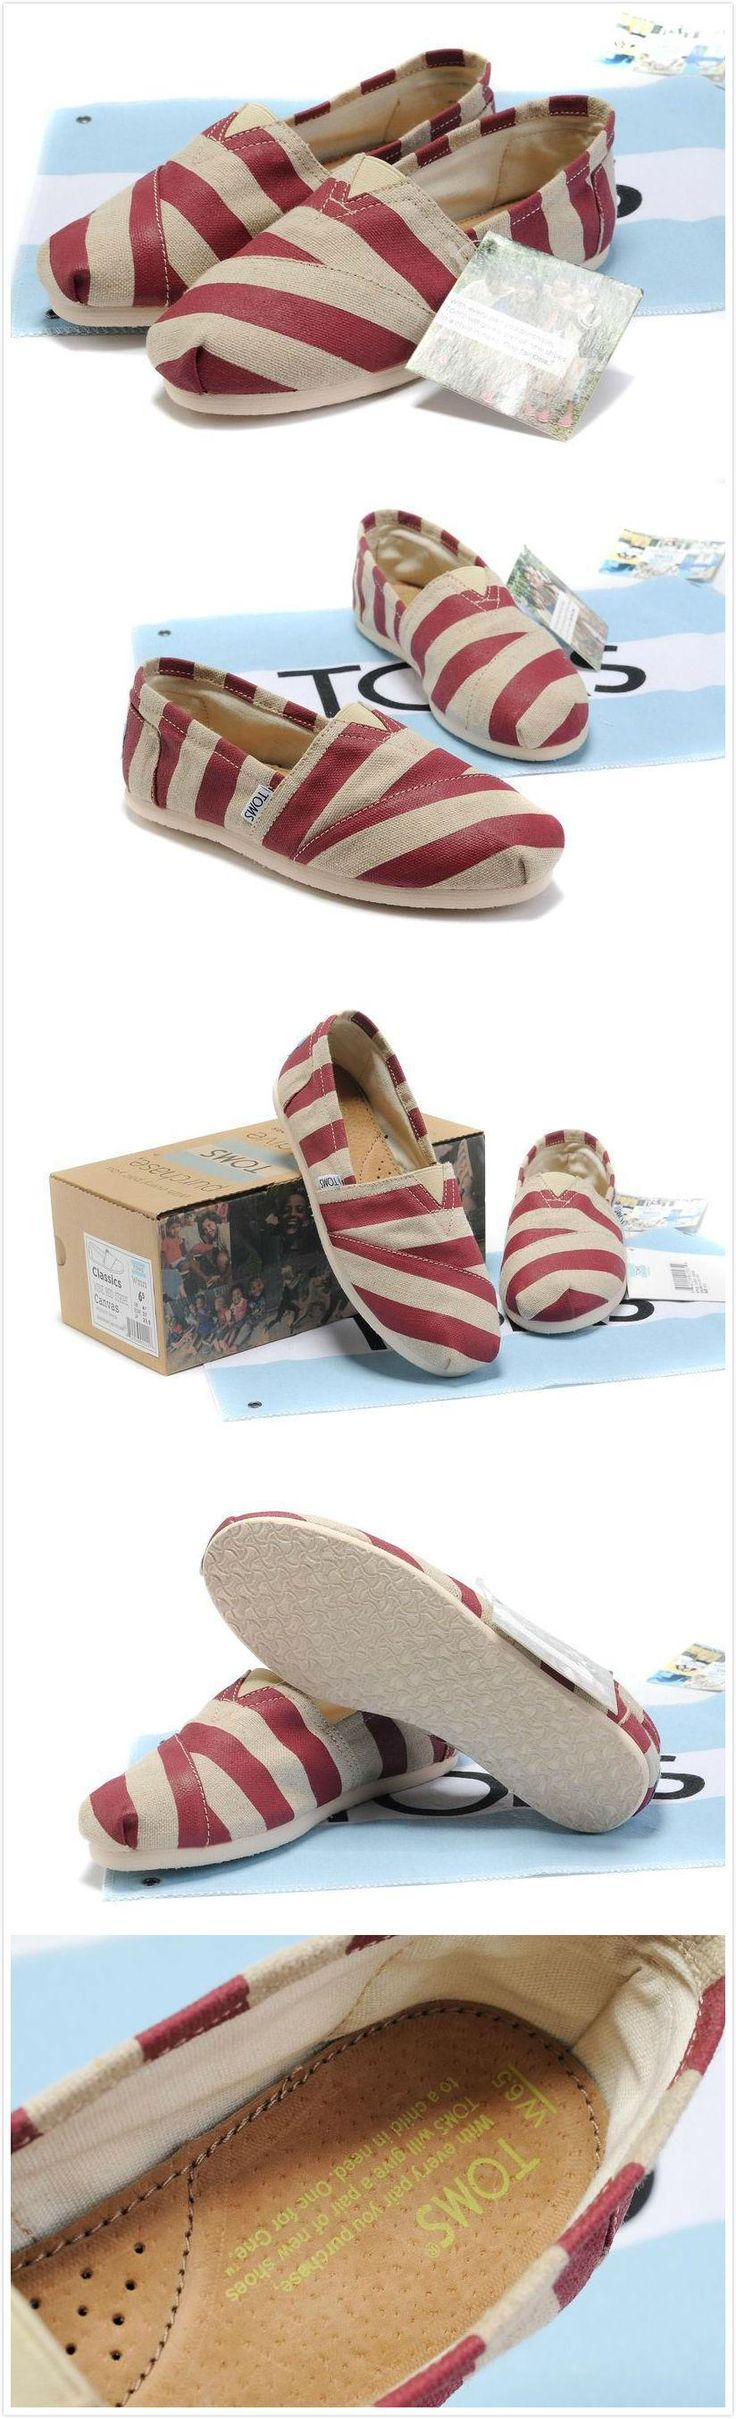 Super cheap, TOMS Shoes in any style you want. Only $16.49!  Seems legit lol